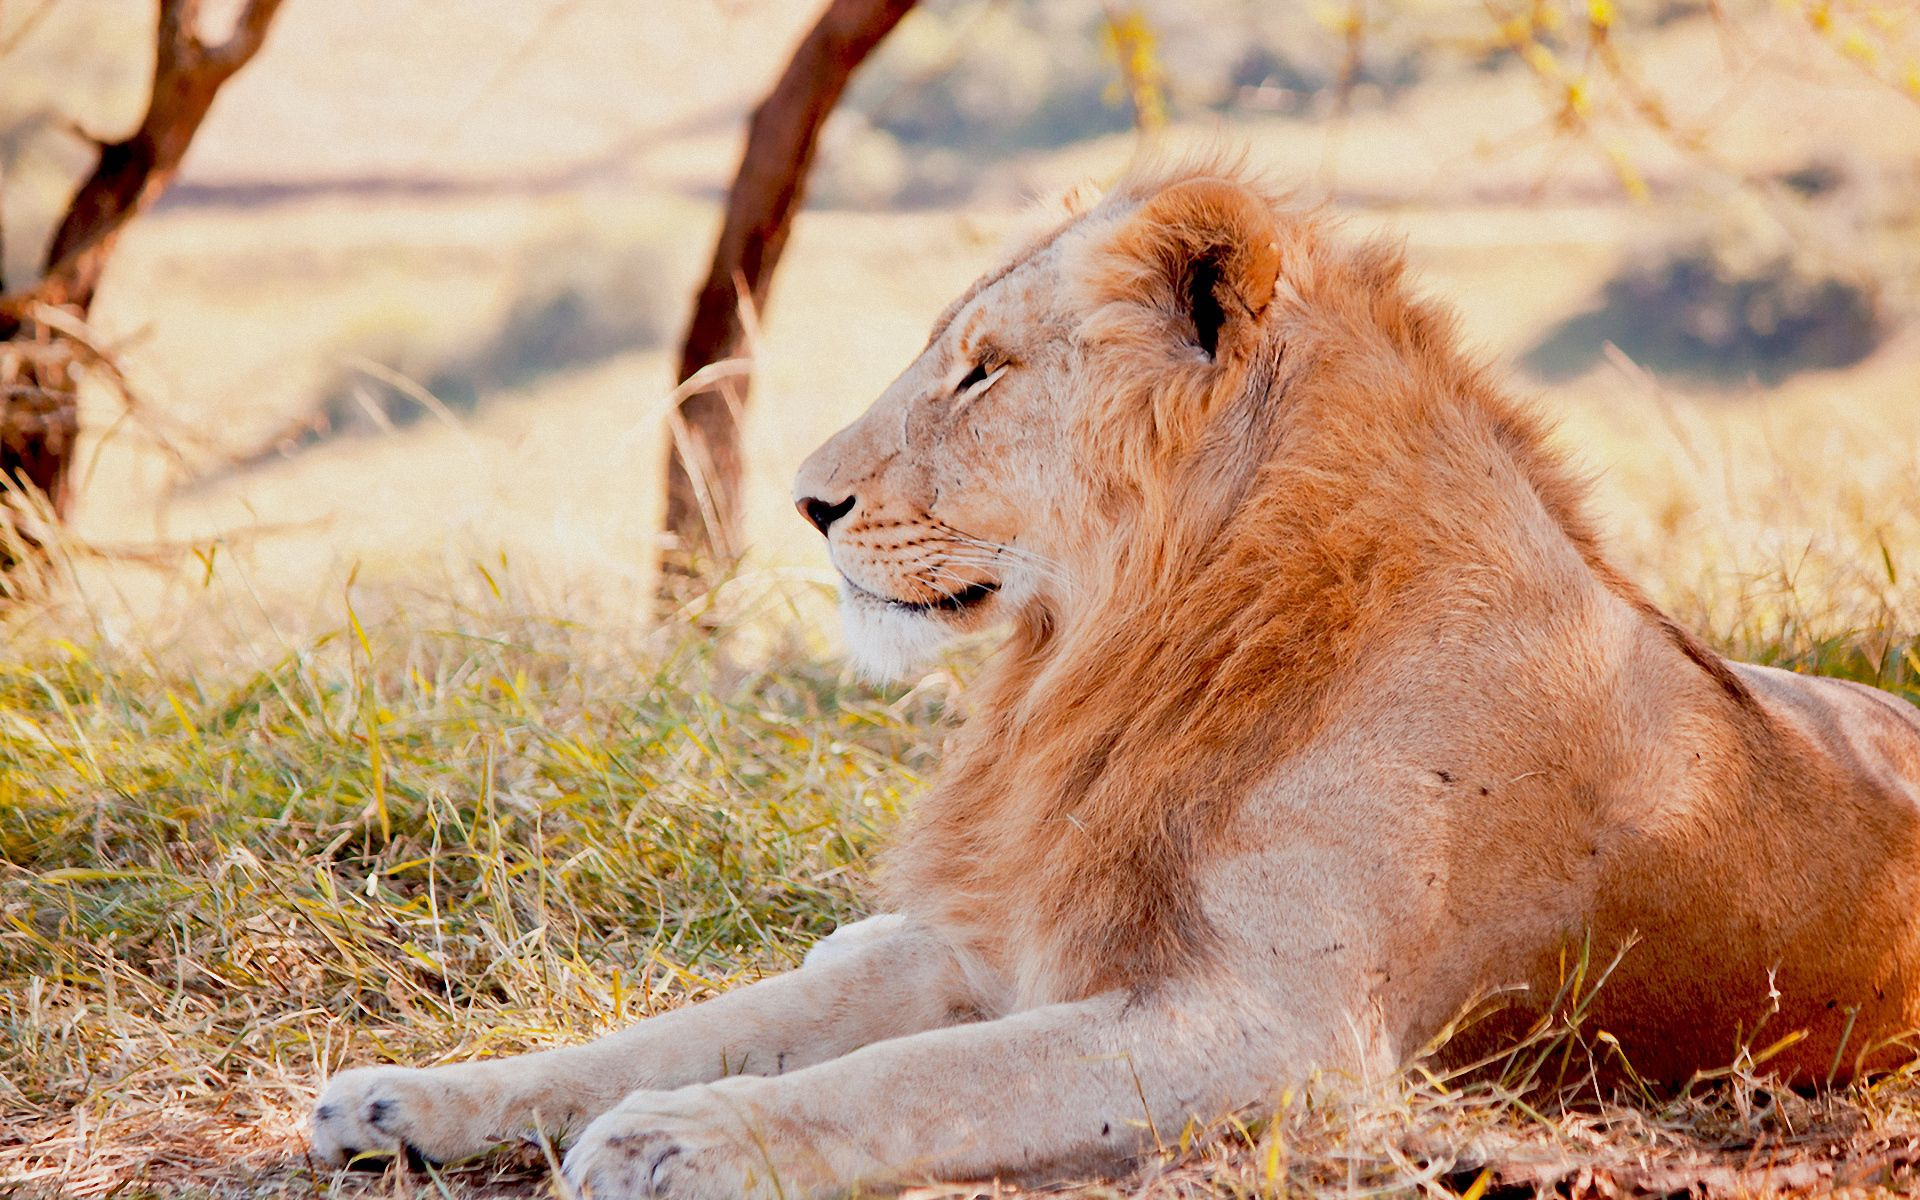 56751 download wallpaper Animals, Lion, Predator, To Lie Down, Lie, Grass, Field screensavers and pictures for free